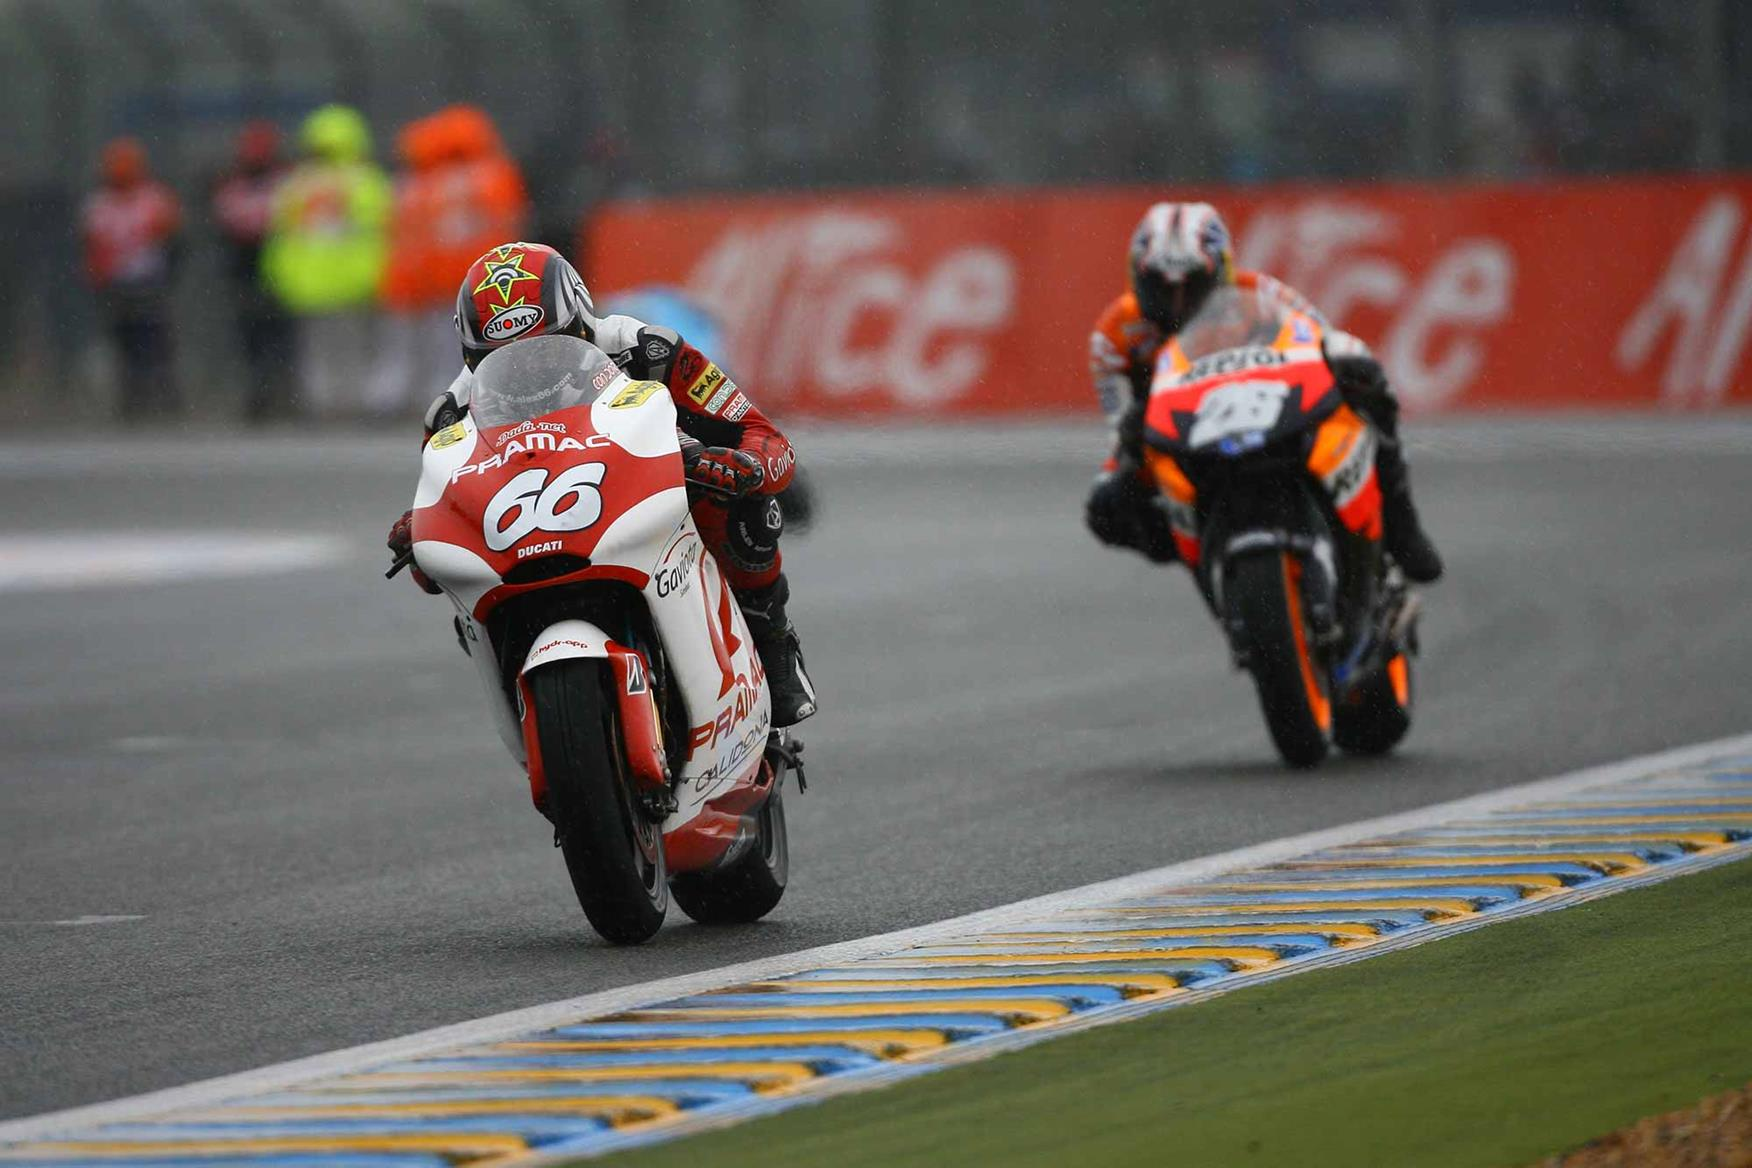 Hofmann leads Pedrosa at Le Mans in 2007